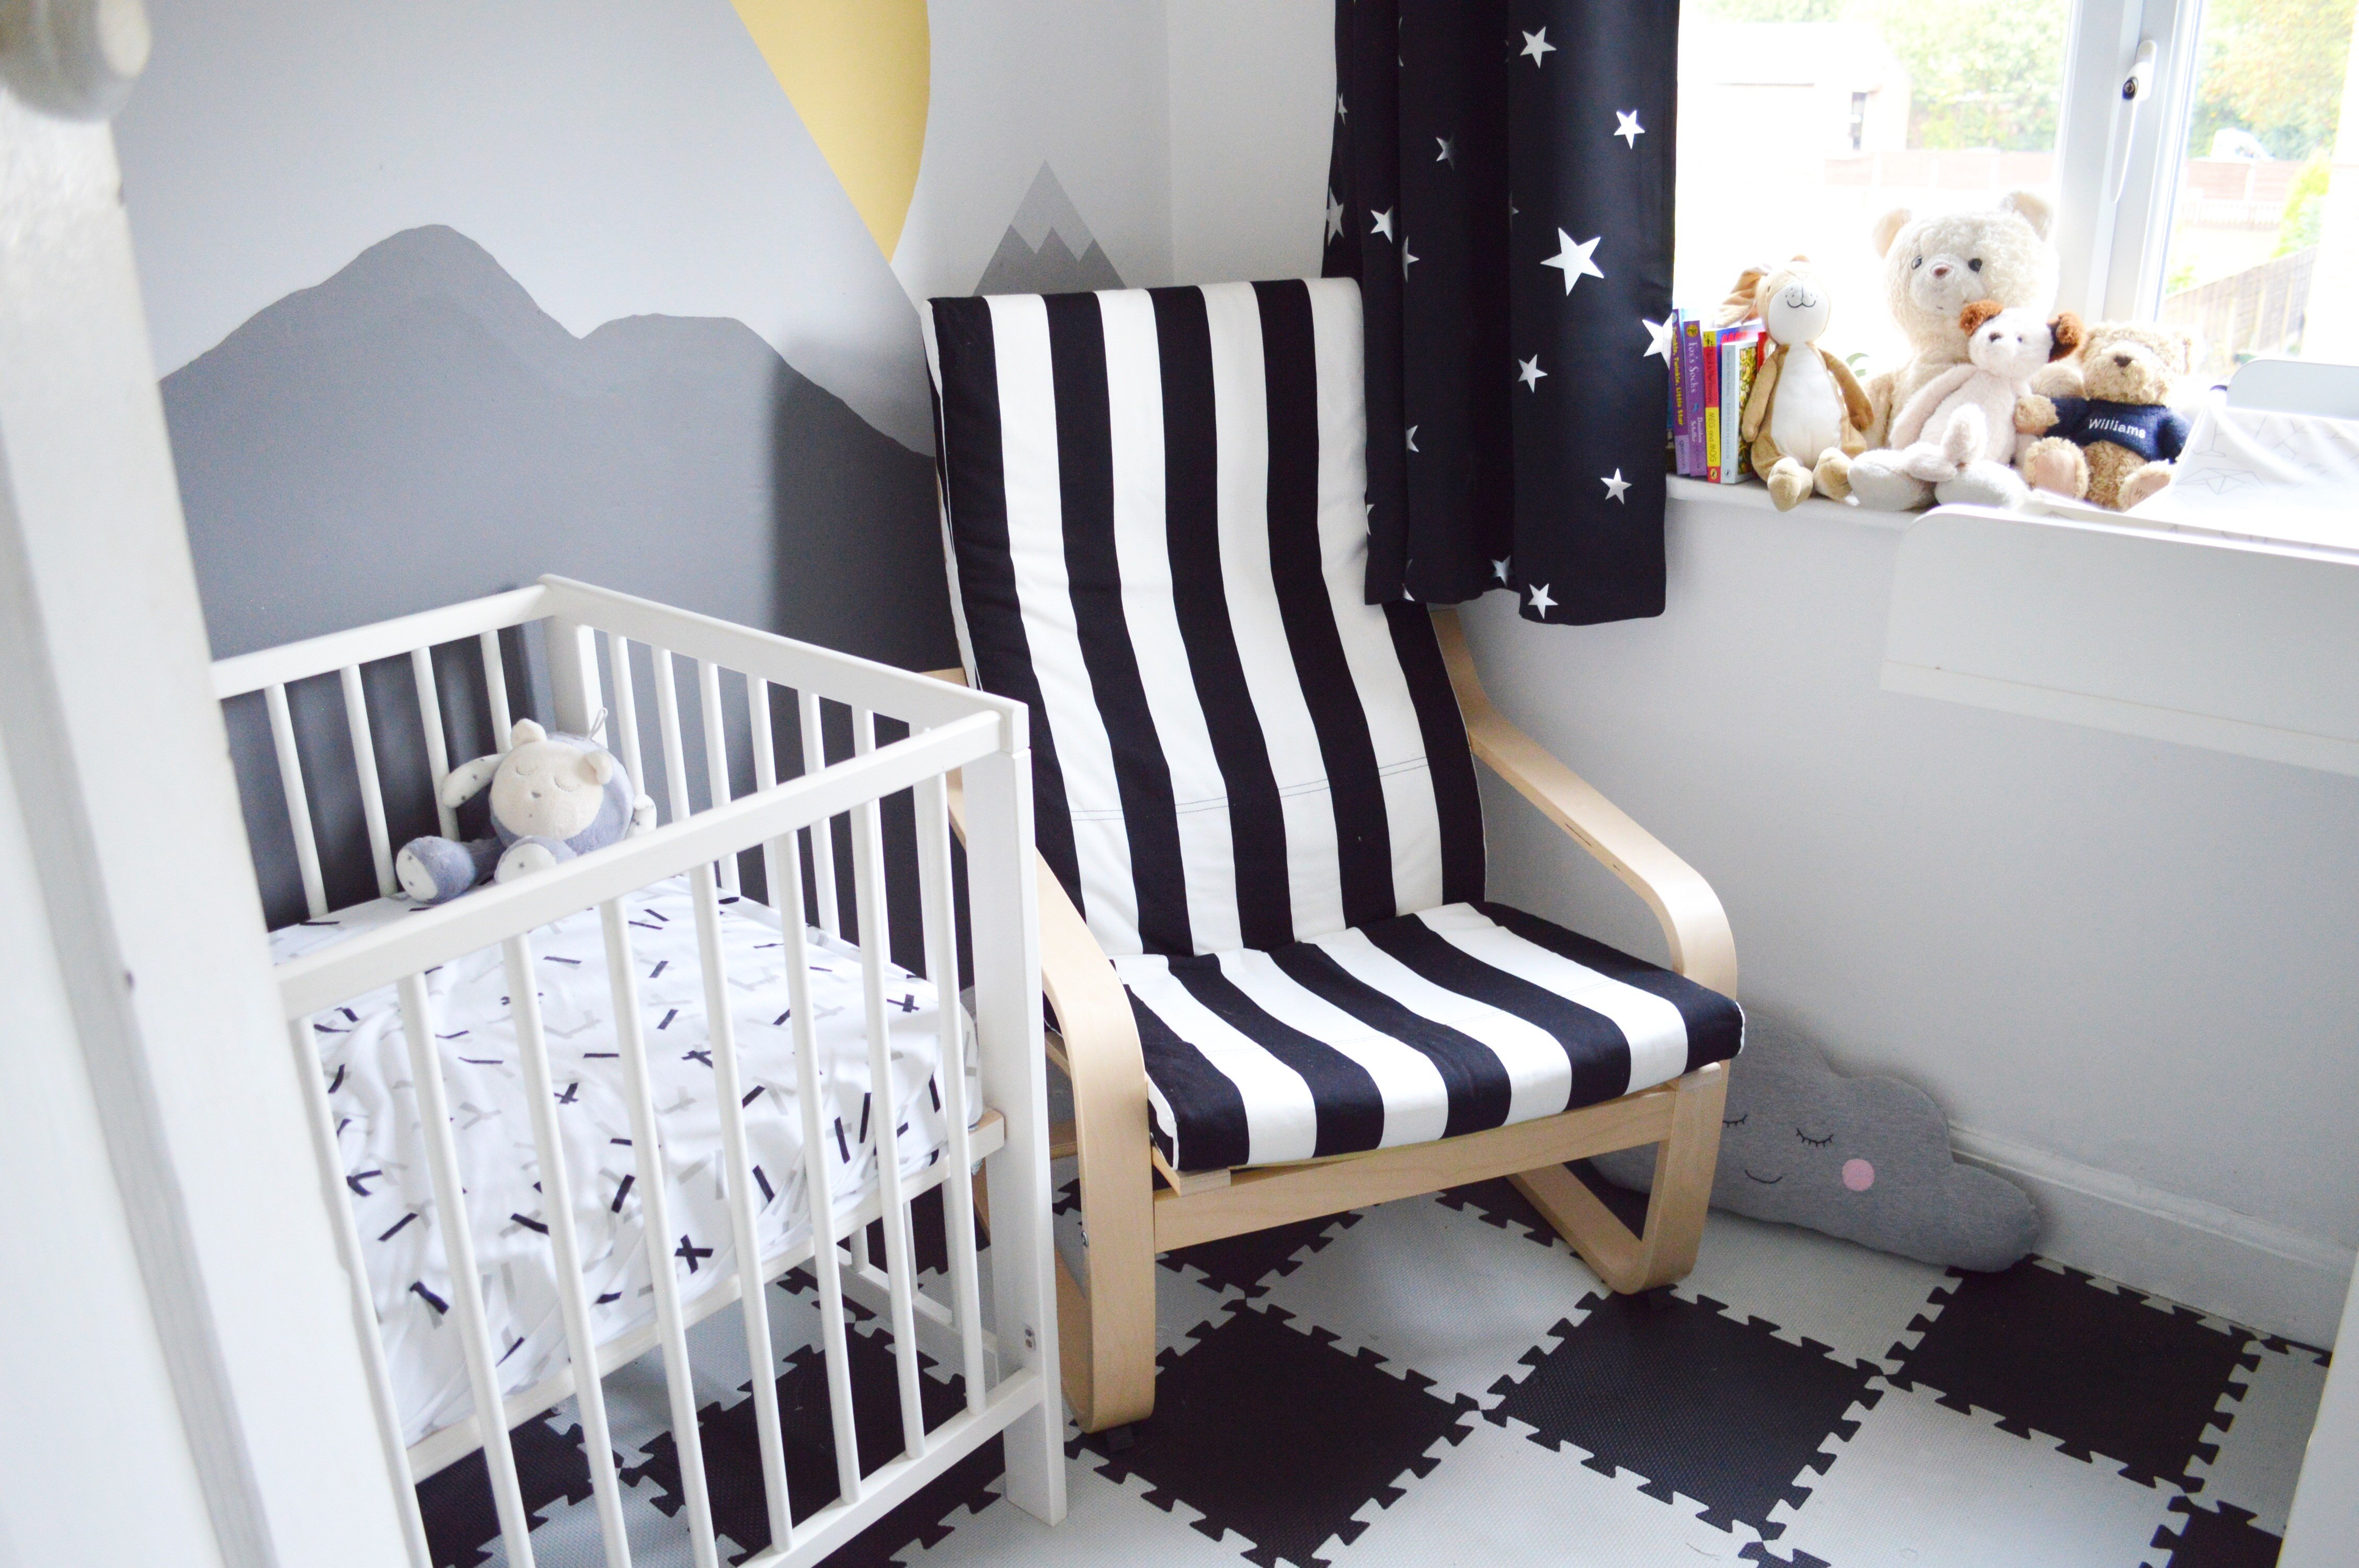 ikea poang chair review silver sashes our new nursing oh hi diy